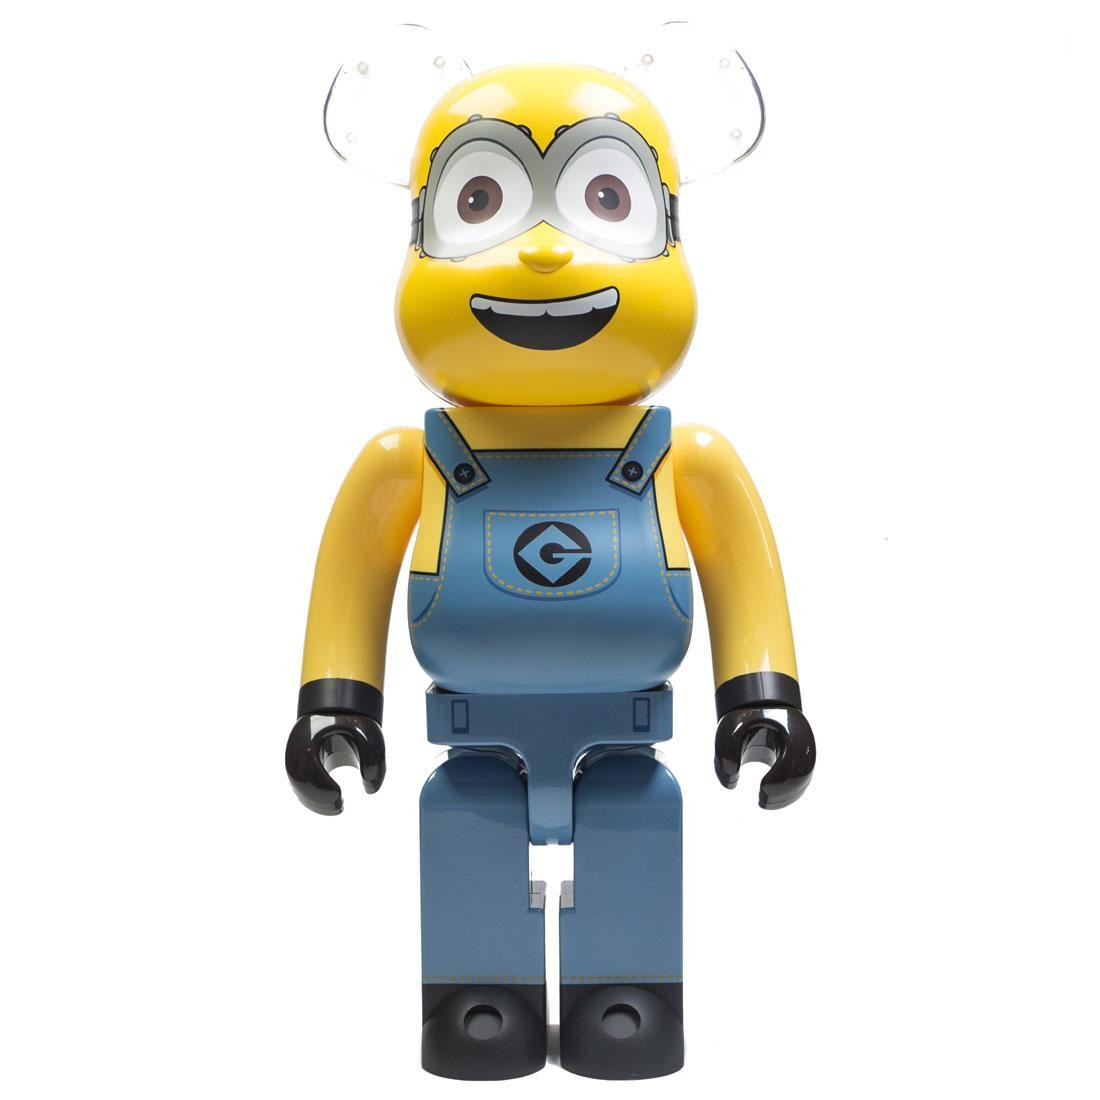 Medicom Despicable Me 3 Minion Dave 1000% Bearbrick Figure (yellow)